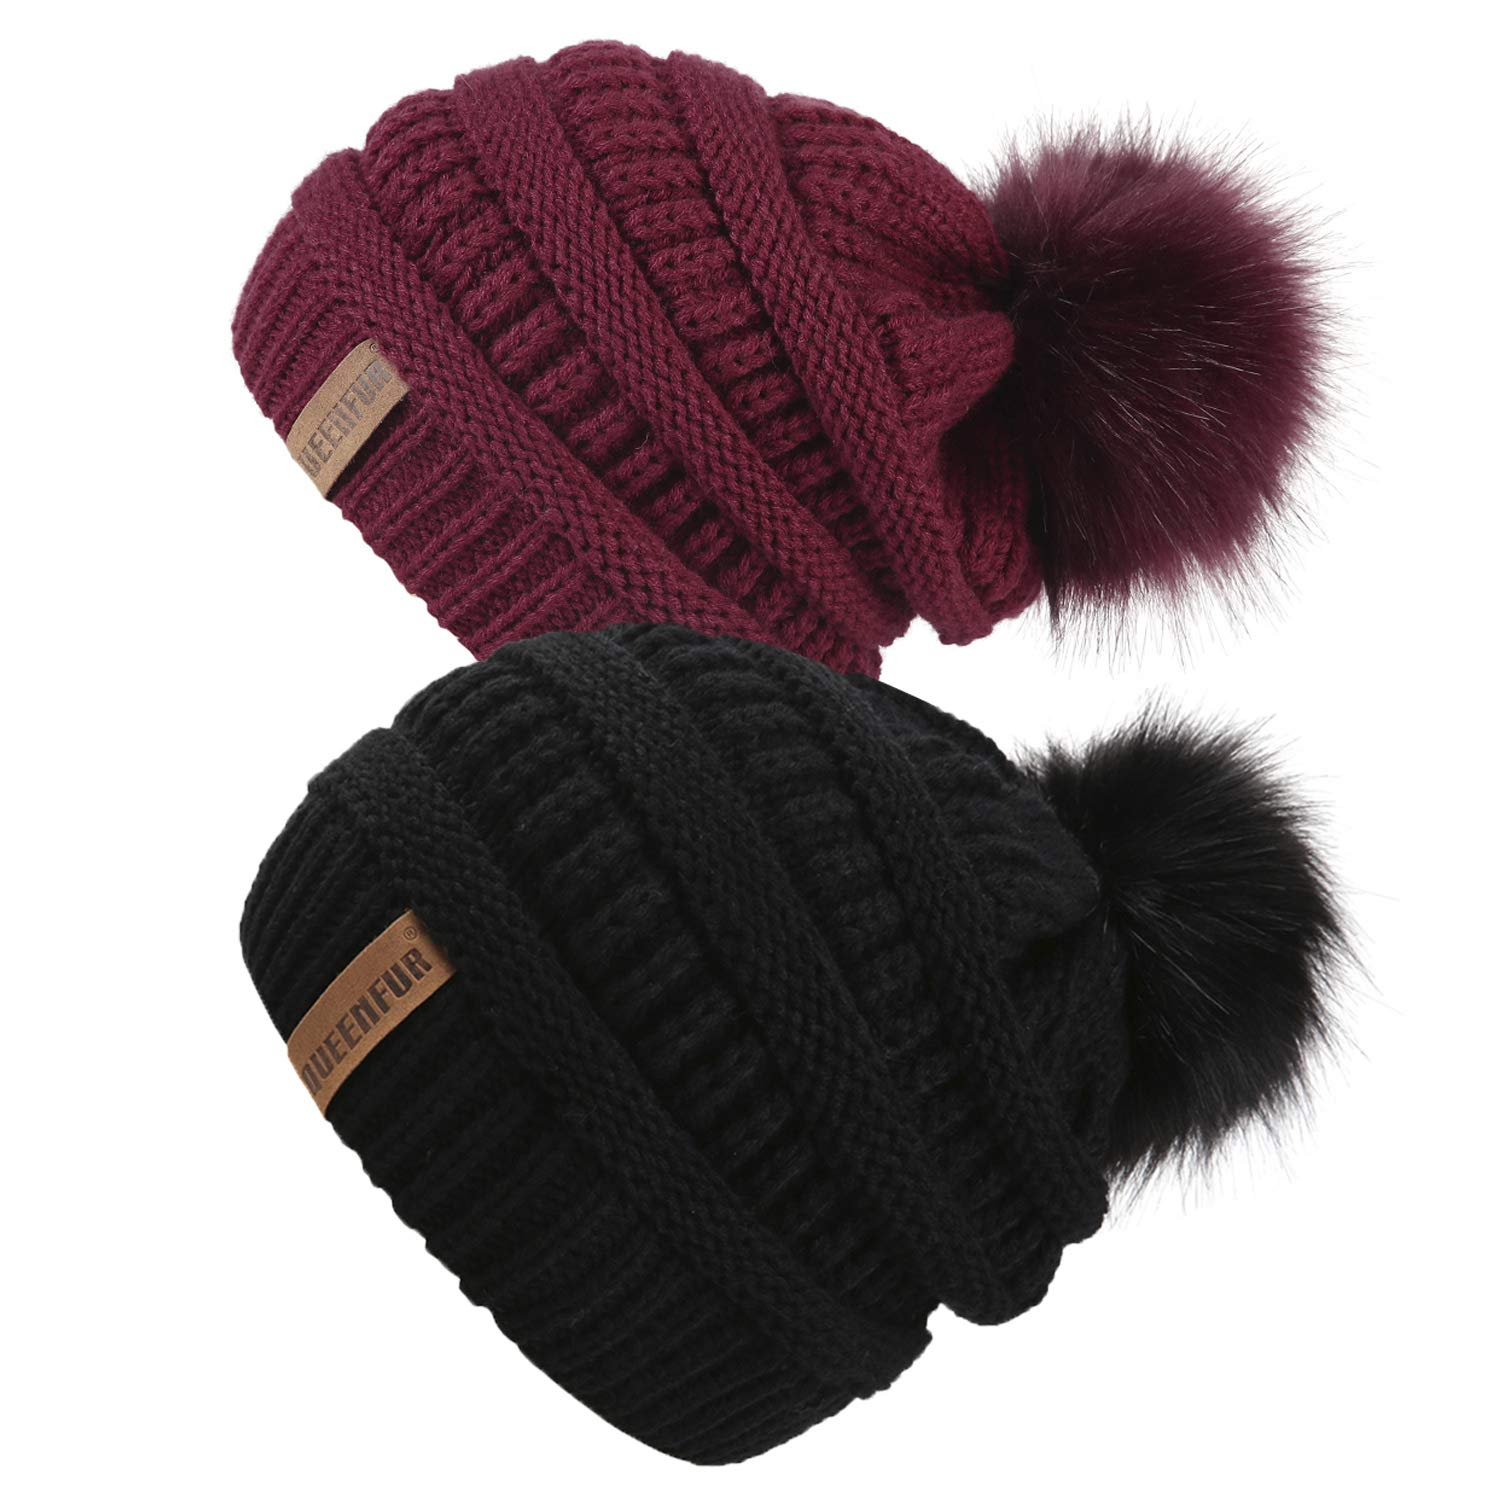 QUEENFUR Women Knit Slouchy Beanie Chunky Baggy Hat with Faux Fur Pompom Winter Soft Warm Ski Cap (2 Pcs Black/Burgundy)